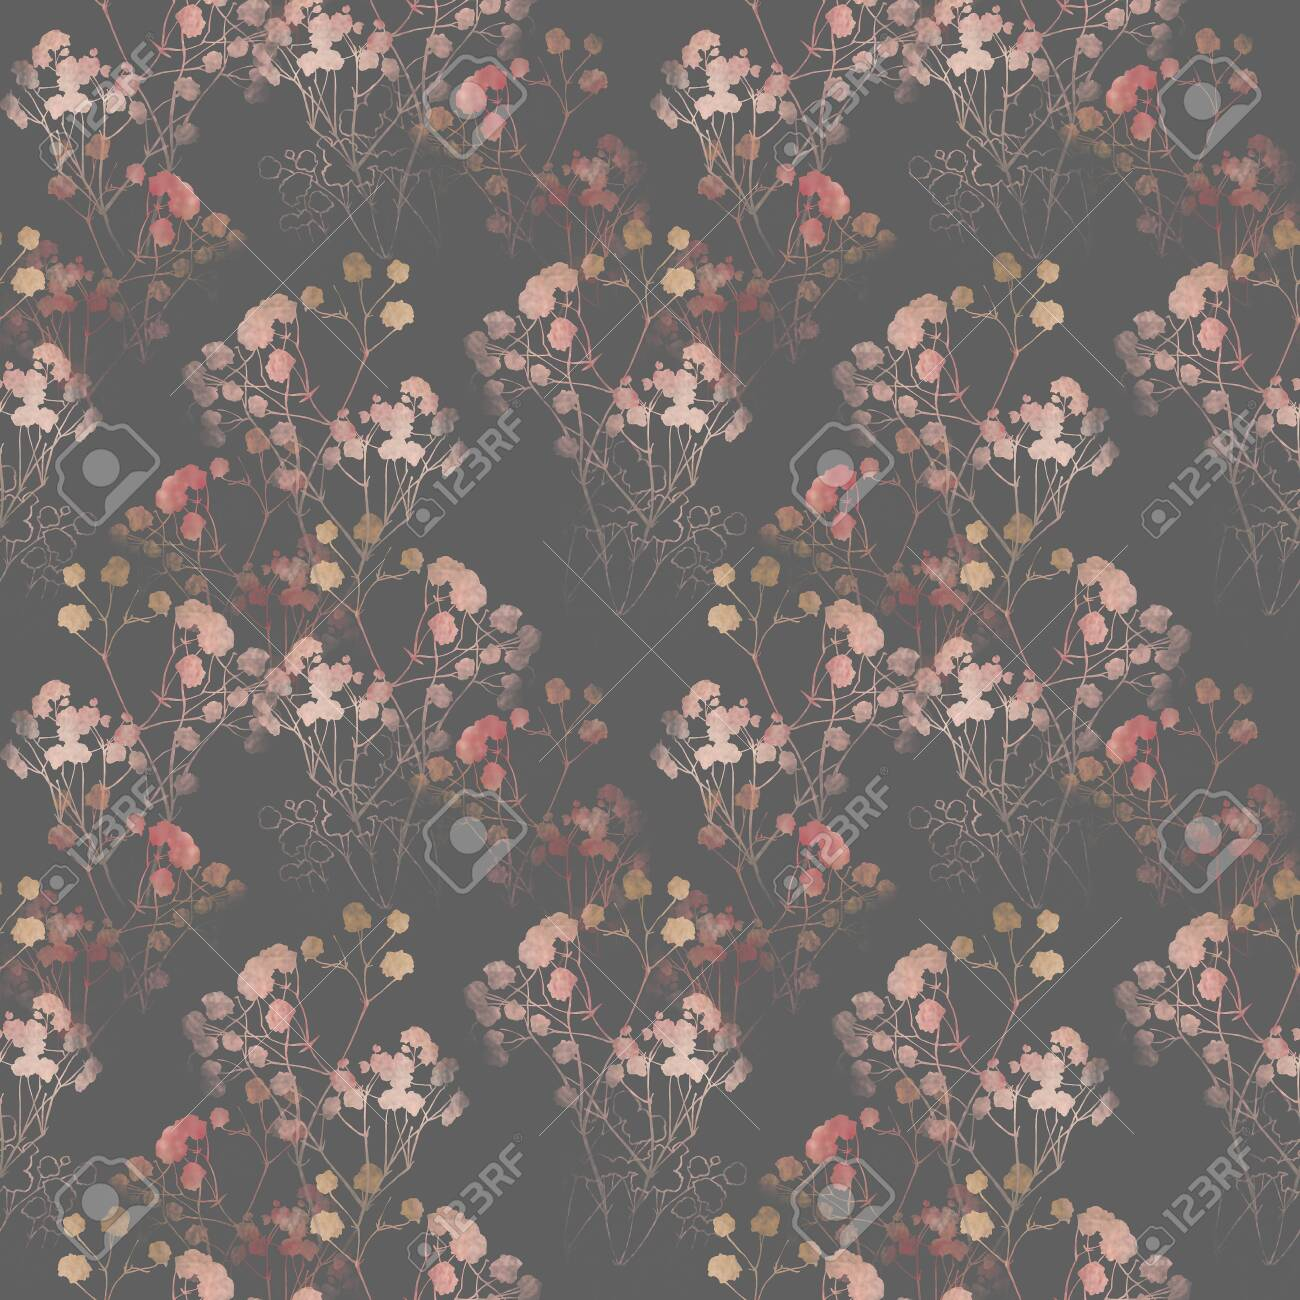 Floral pattern, pink small flowers brunshes. on white gray and black background. Hand drawn illustration, texture pattern. - 132720687